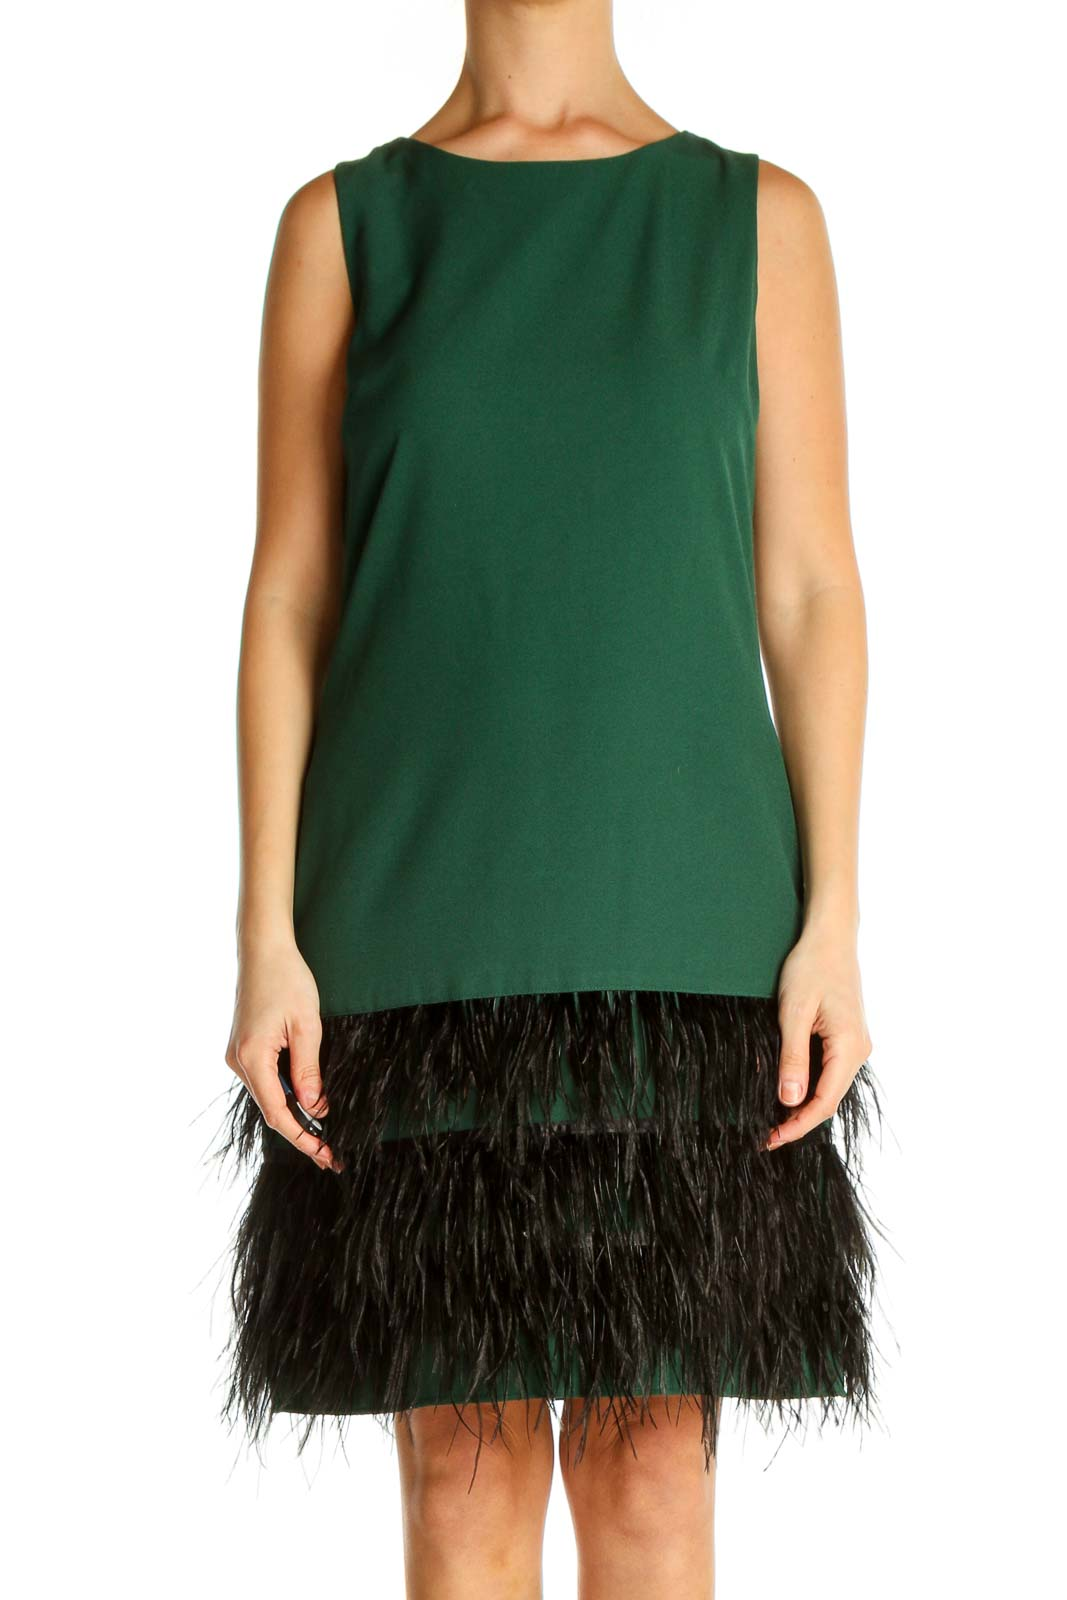 Green Chic A-Line Dress Front